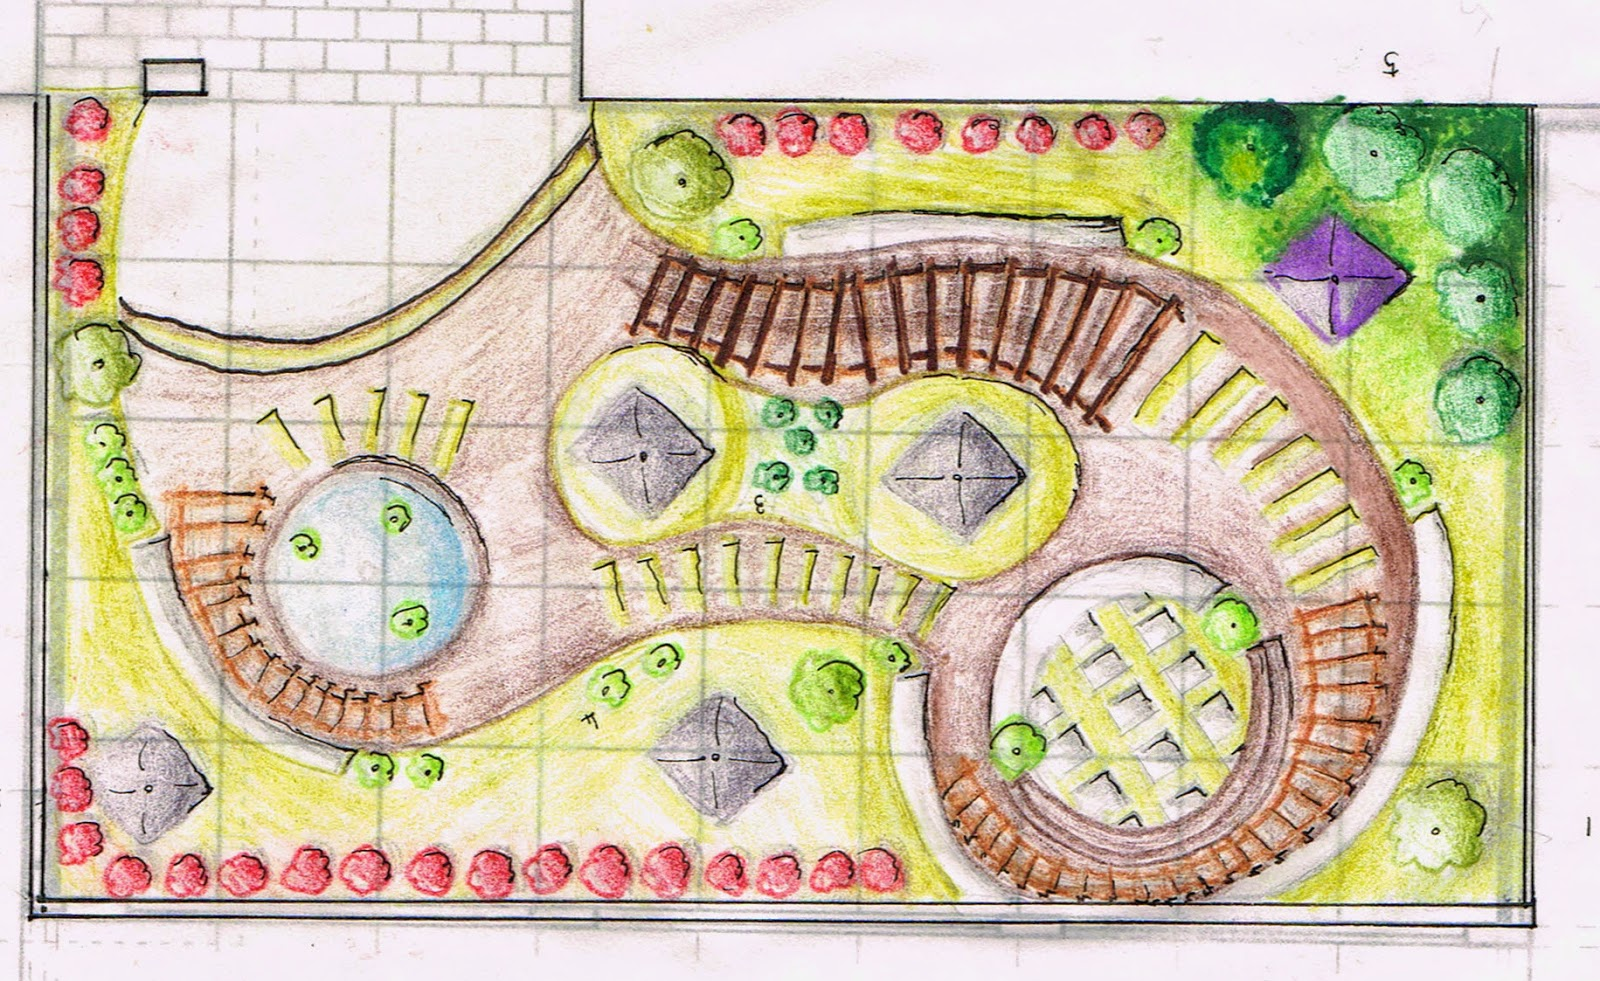 LANDSCAPE PROJECT 2 DESIGN PROJECTPLAN SKETCH